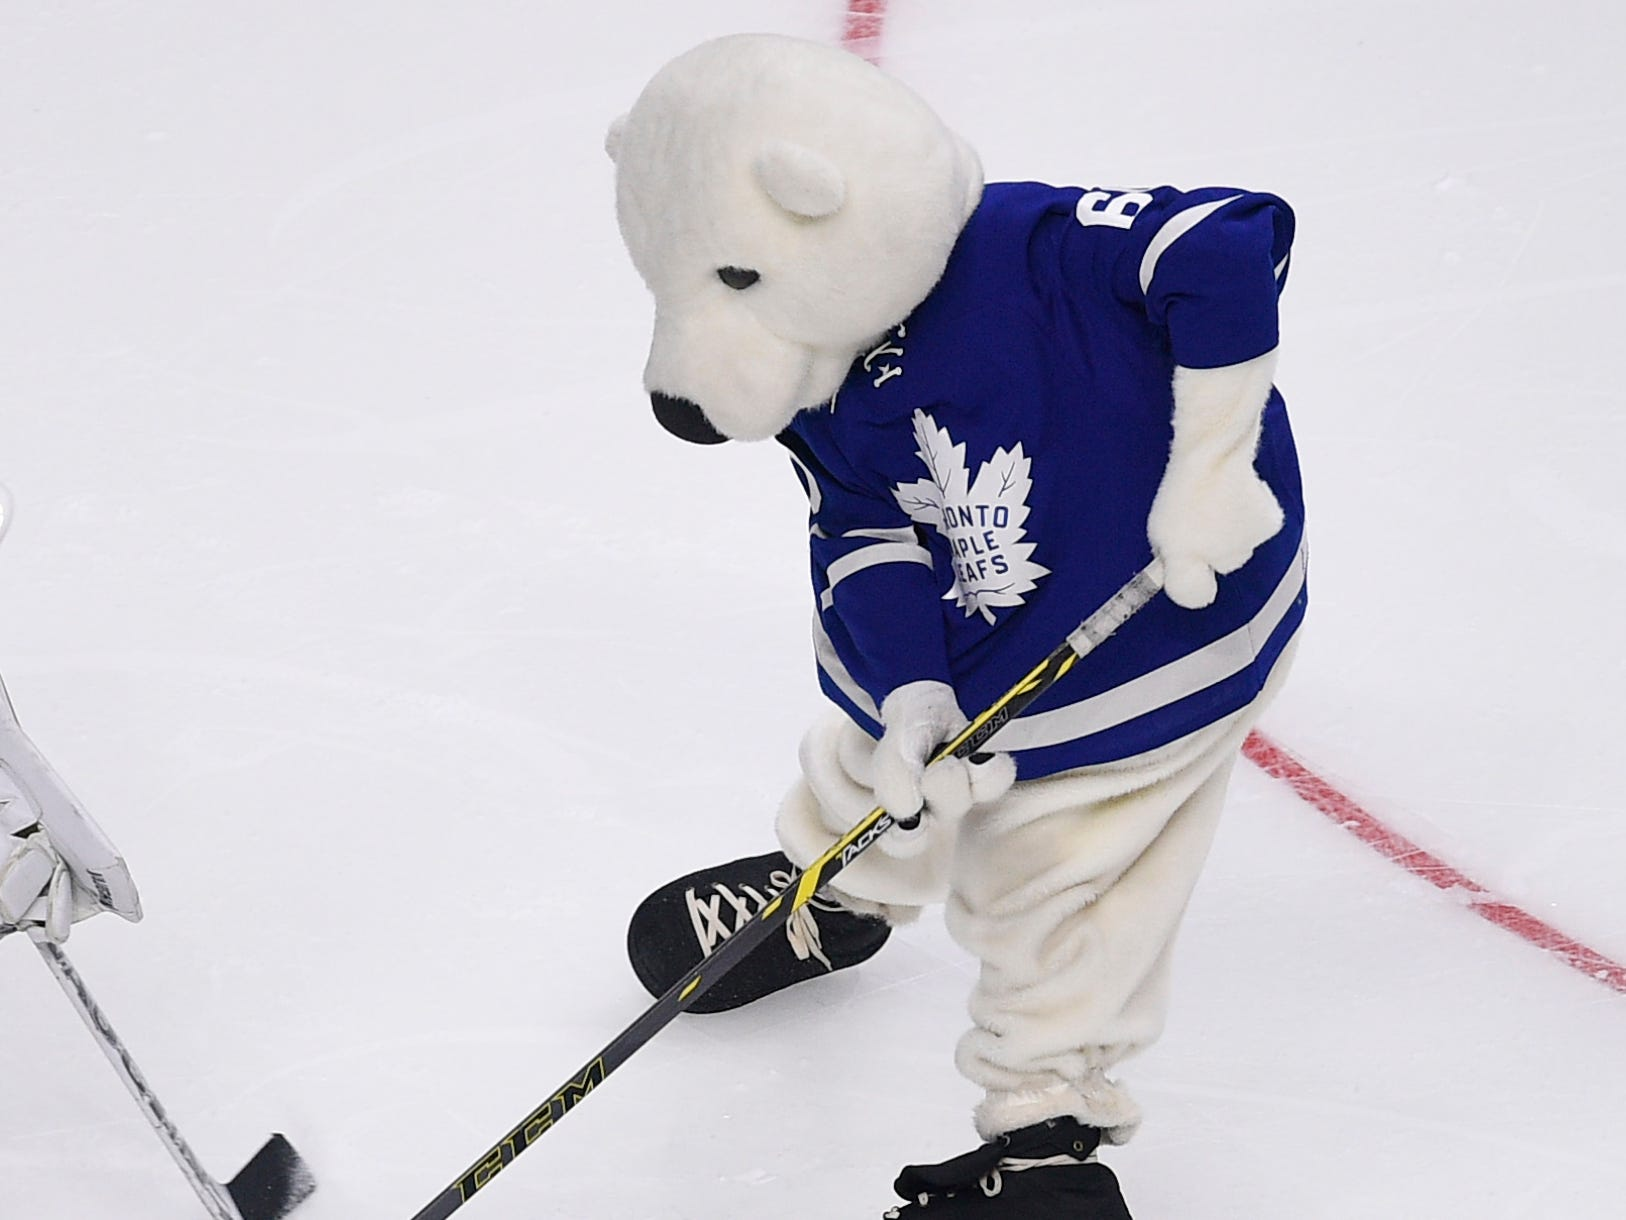 21. Carlton the Bear, Toronto Maple Leafs.